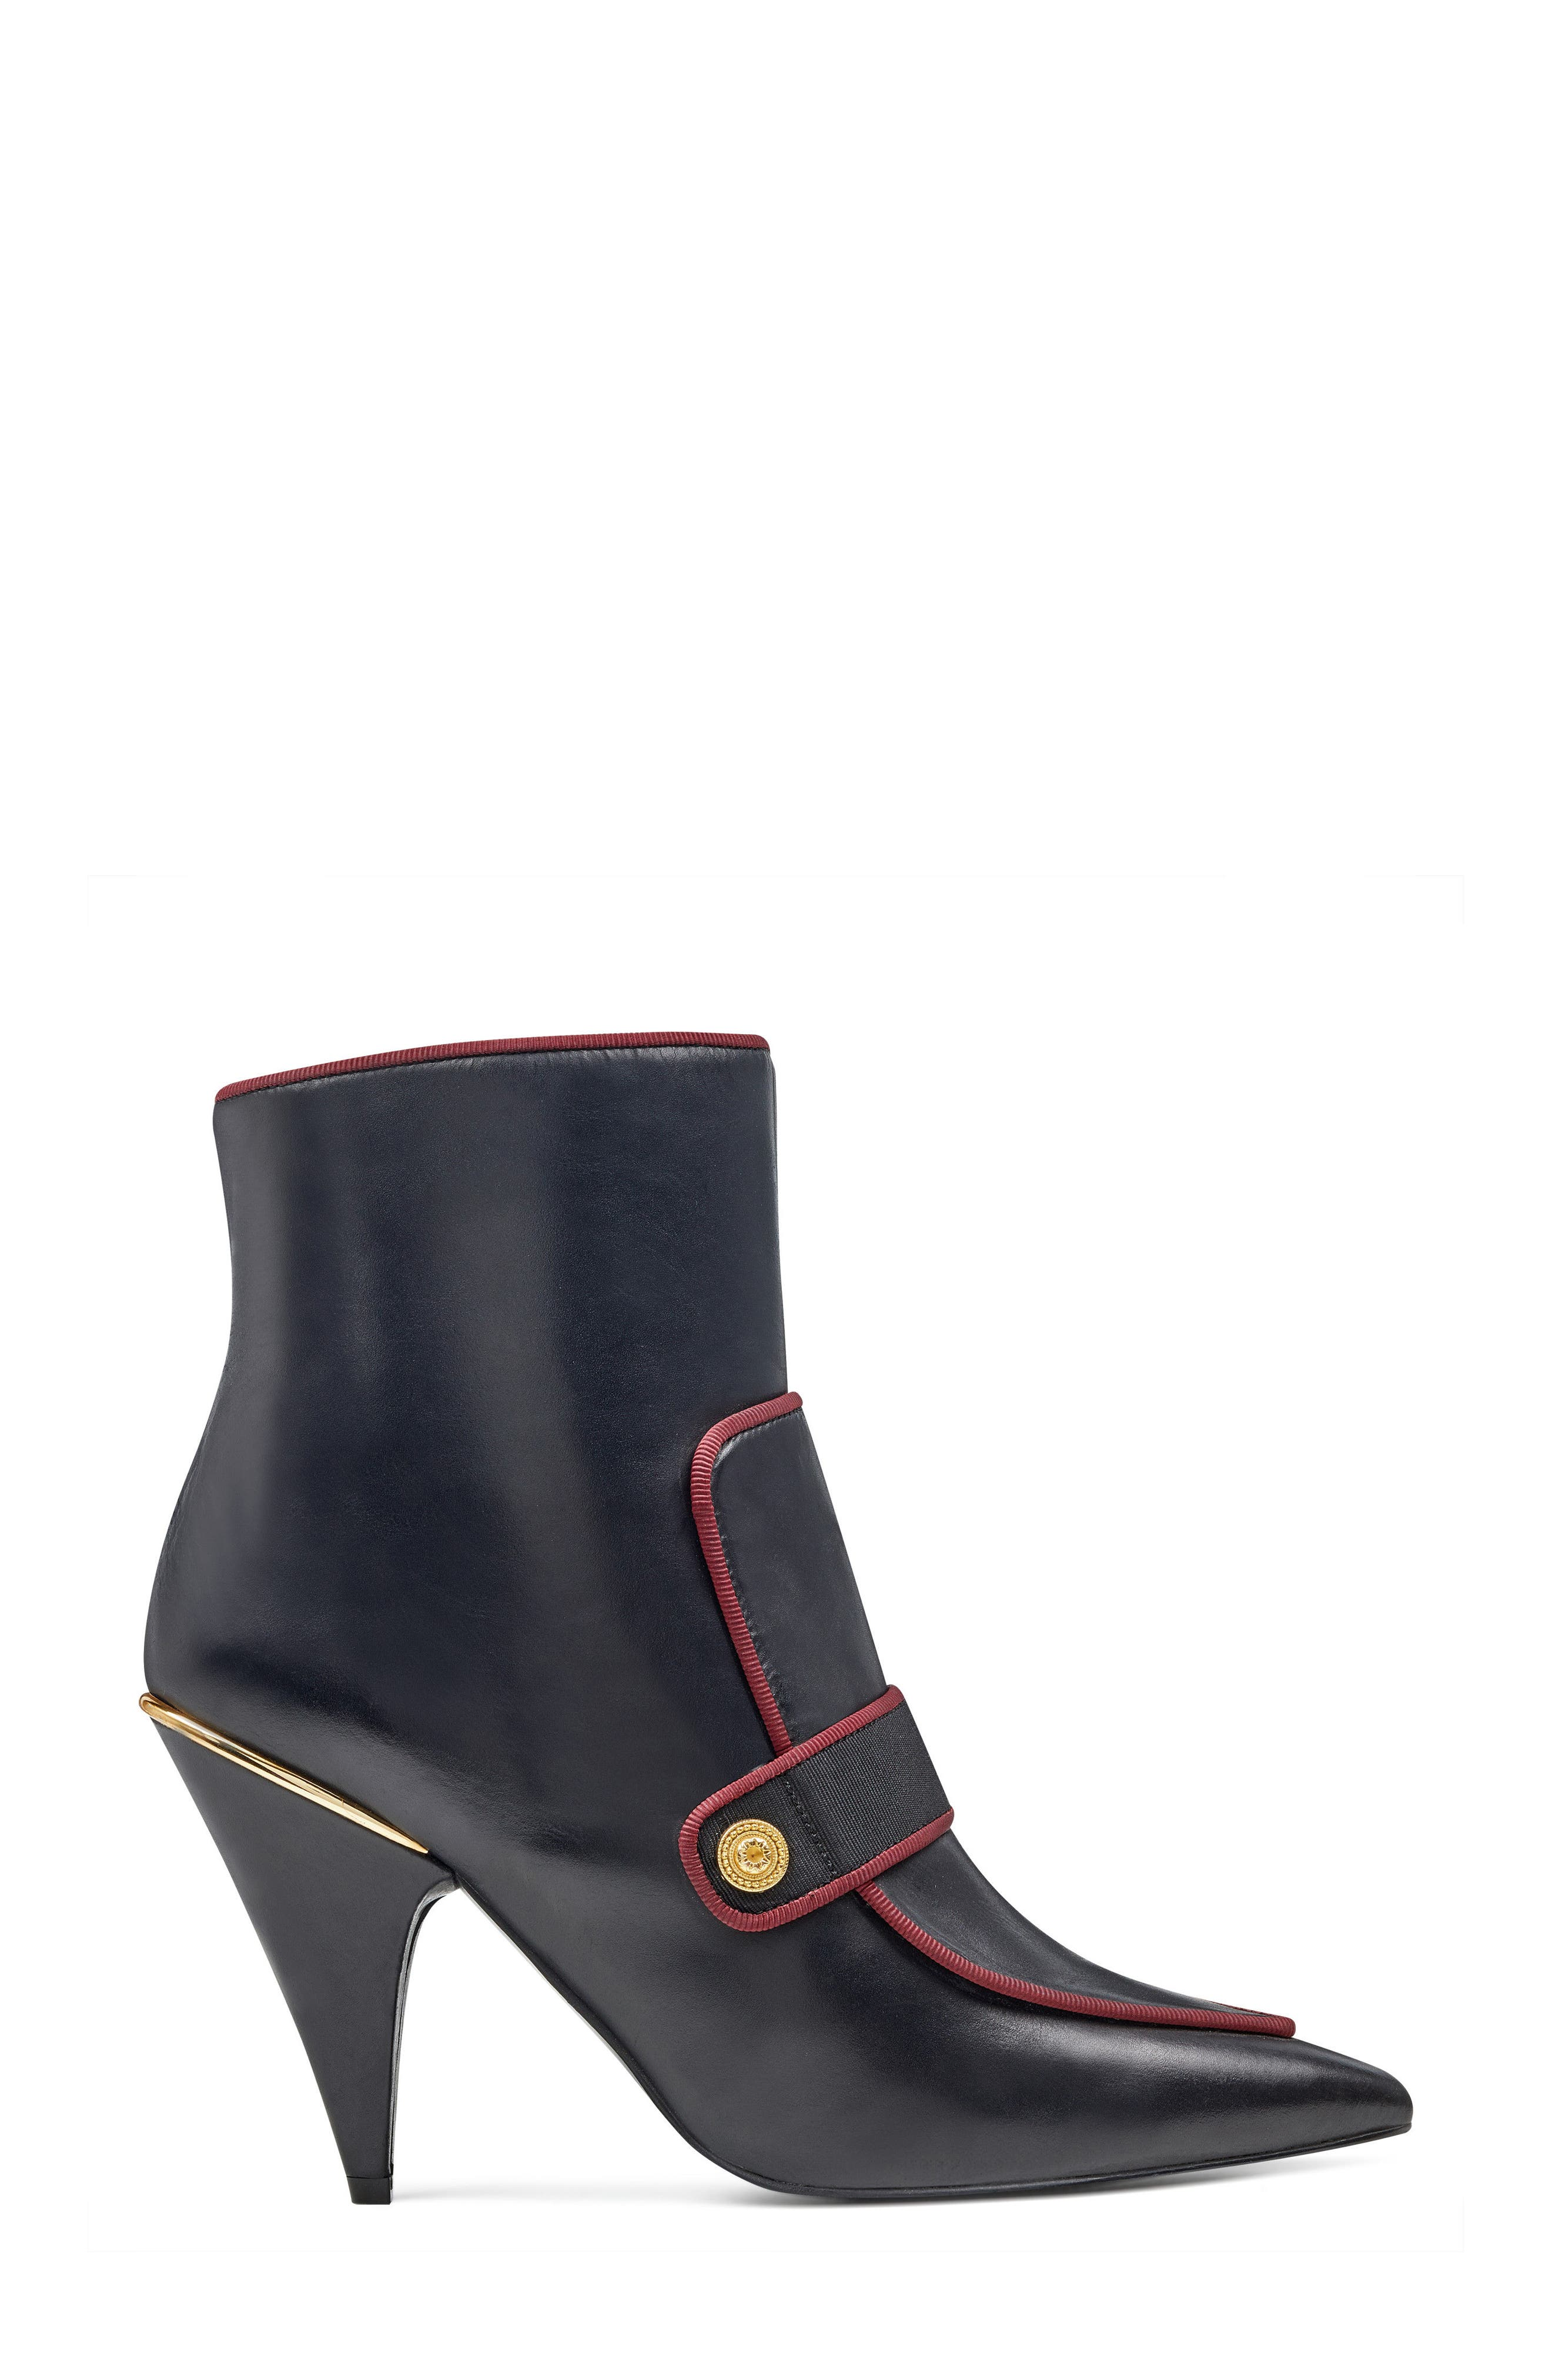 Westham Pointy Toe Bootie,                             Alternate thumbnail 3, color,                             001